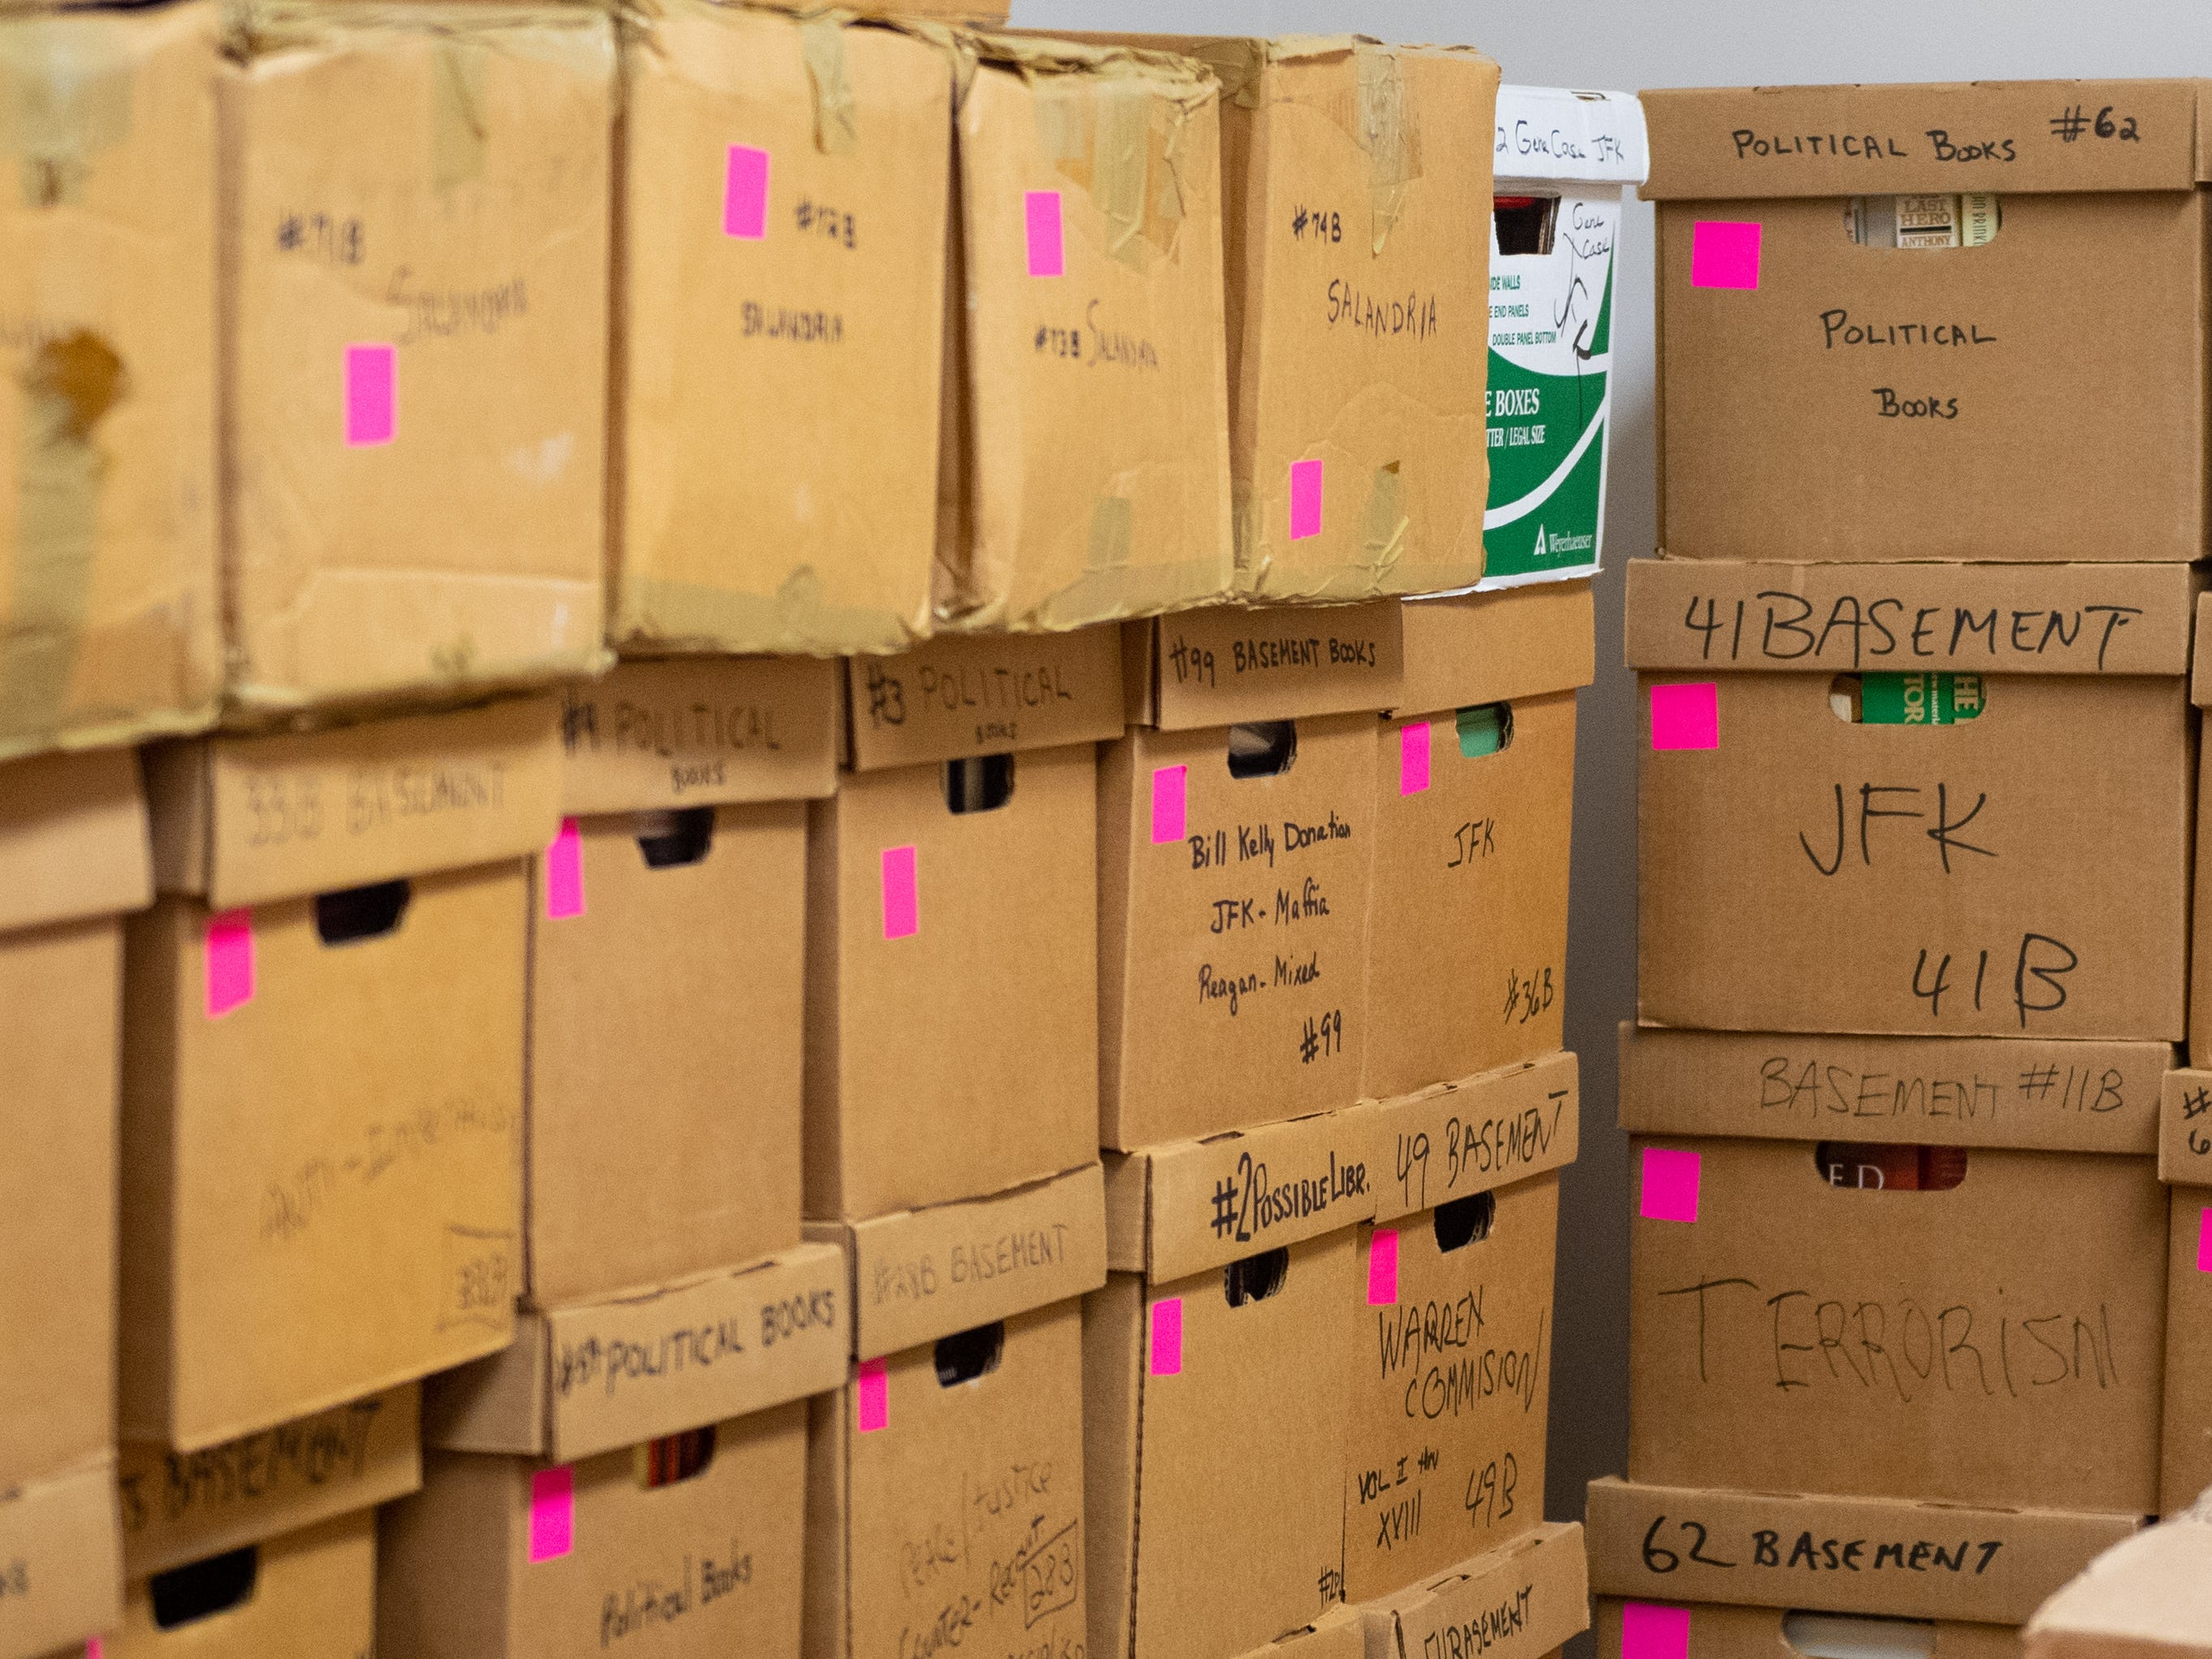 It took around 800 boxes to transport all of the materials that John Judge had in his house to the museum's new location, January 12, 2019.